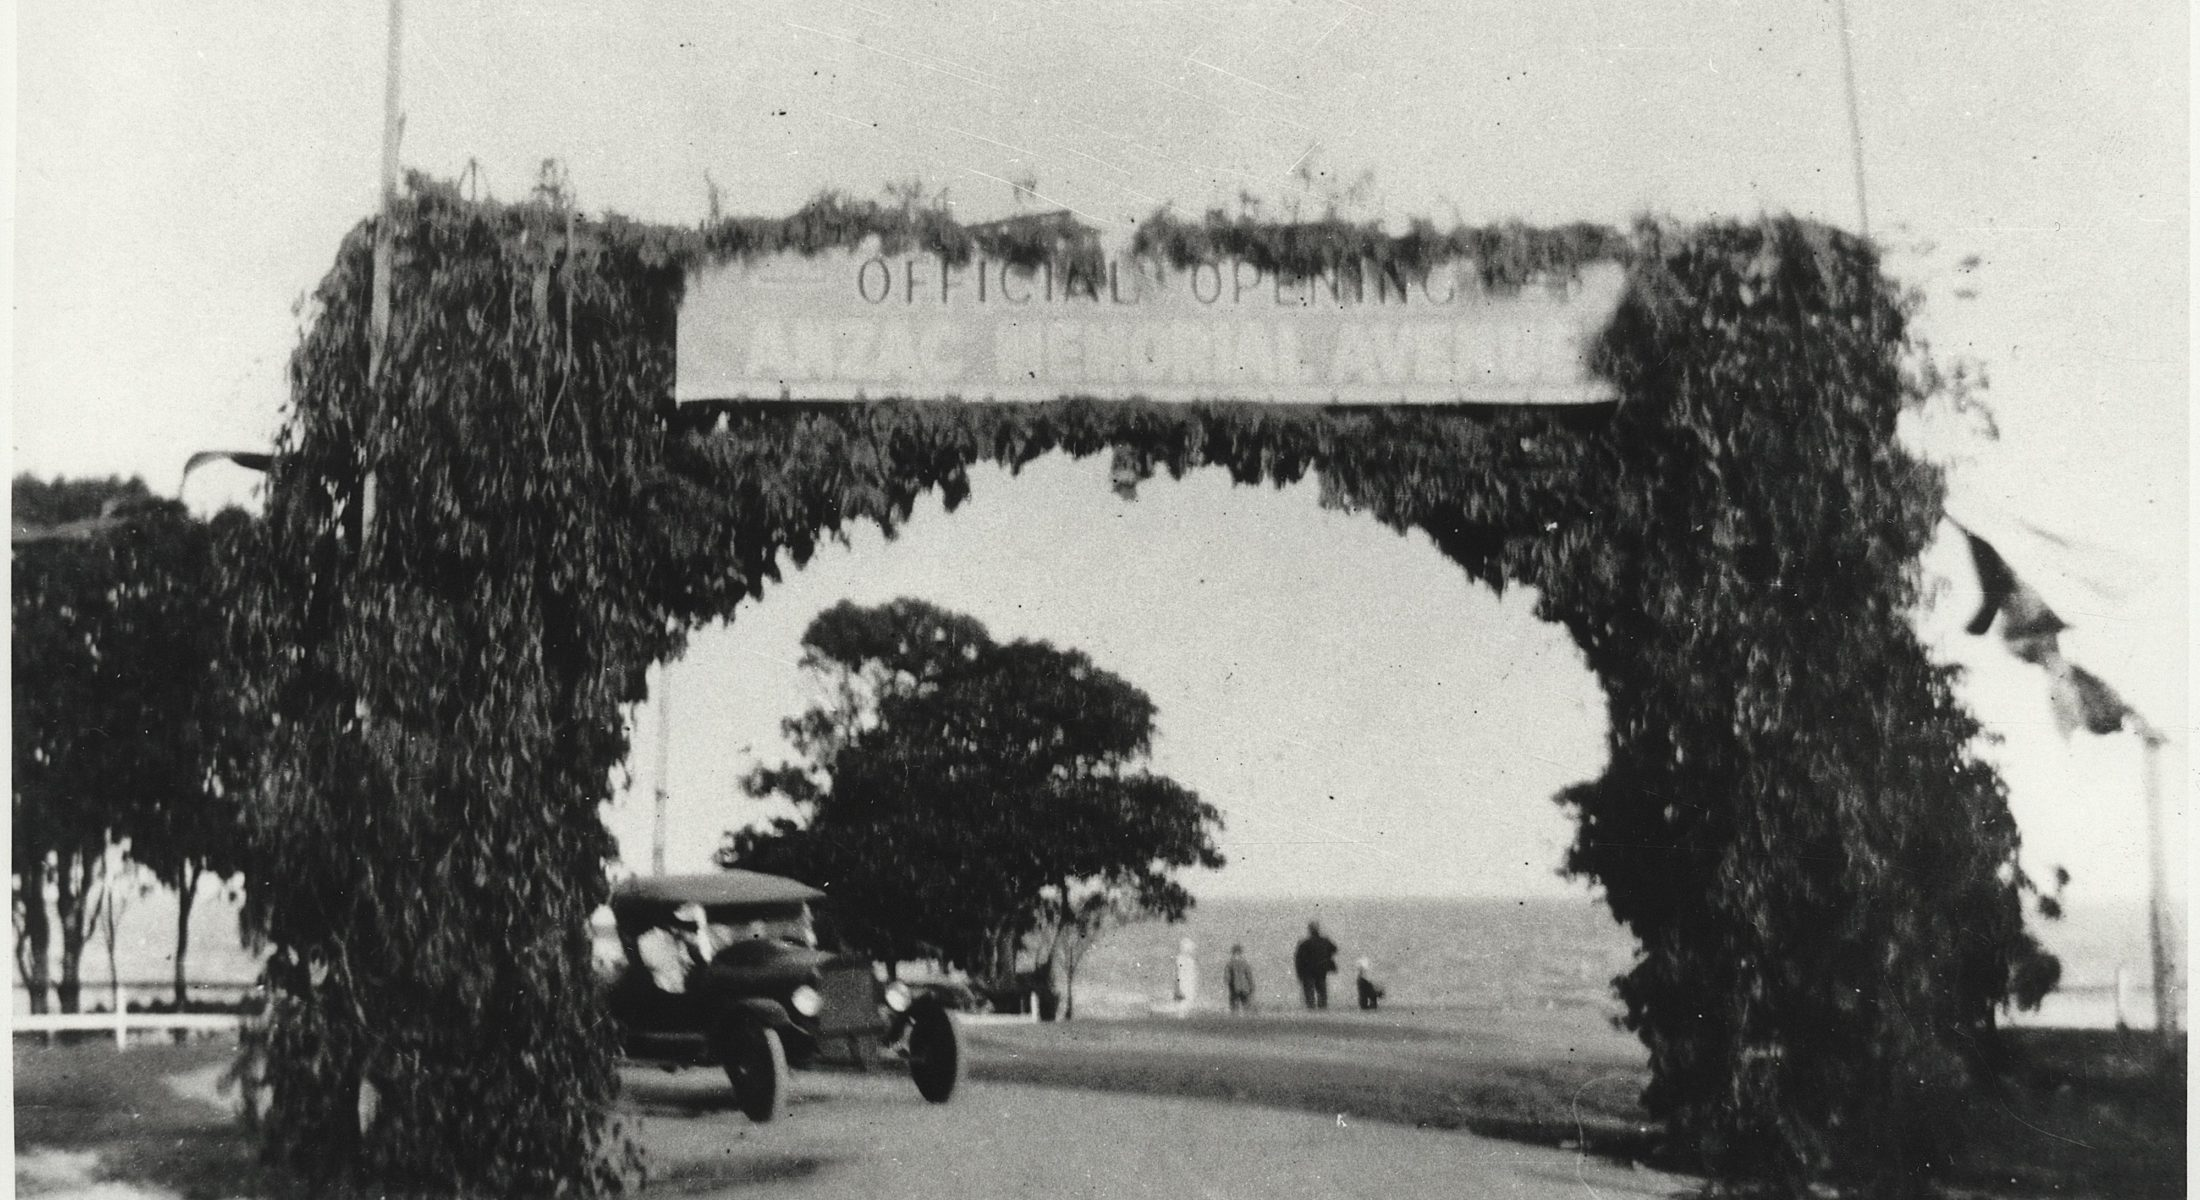 Arch Built For The Official Opening Of Anzac Avenue 7 July 1926